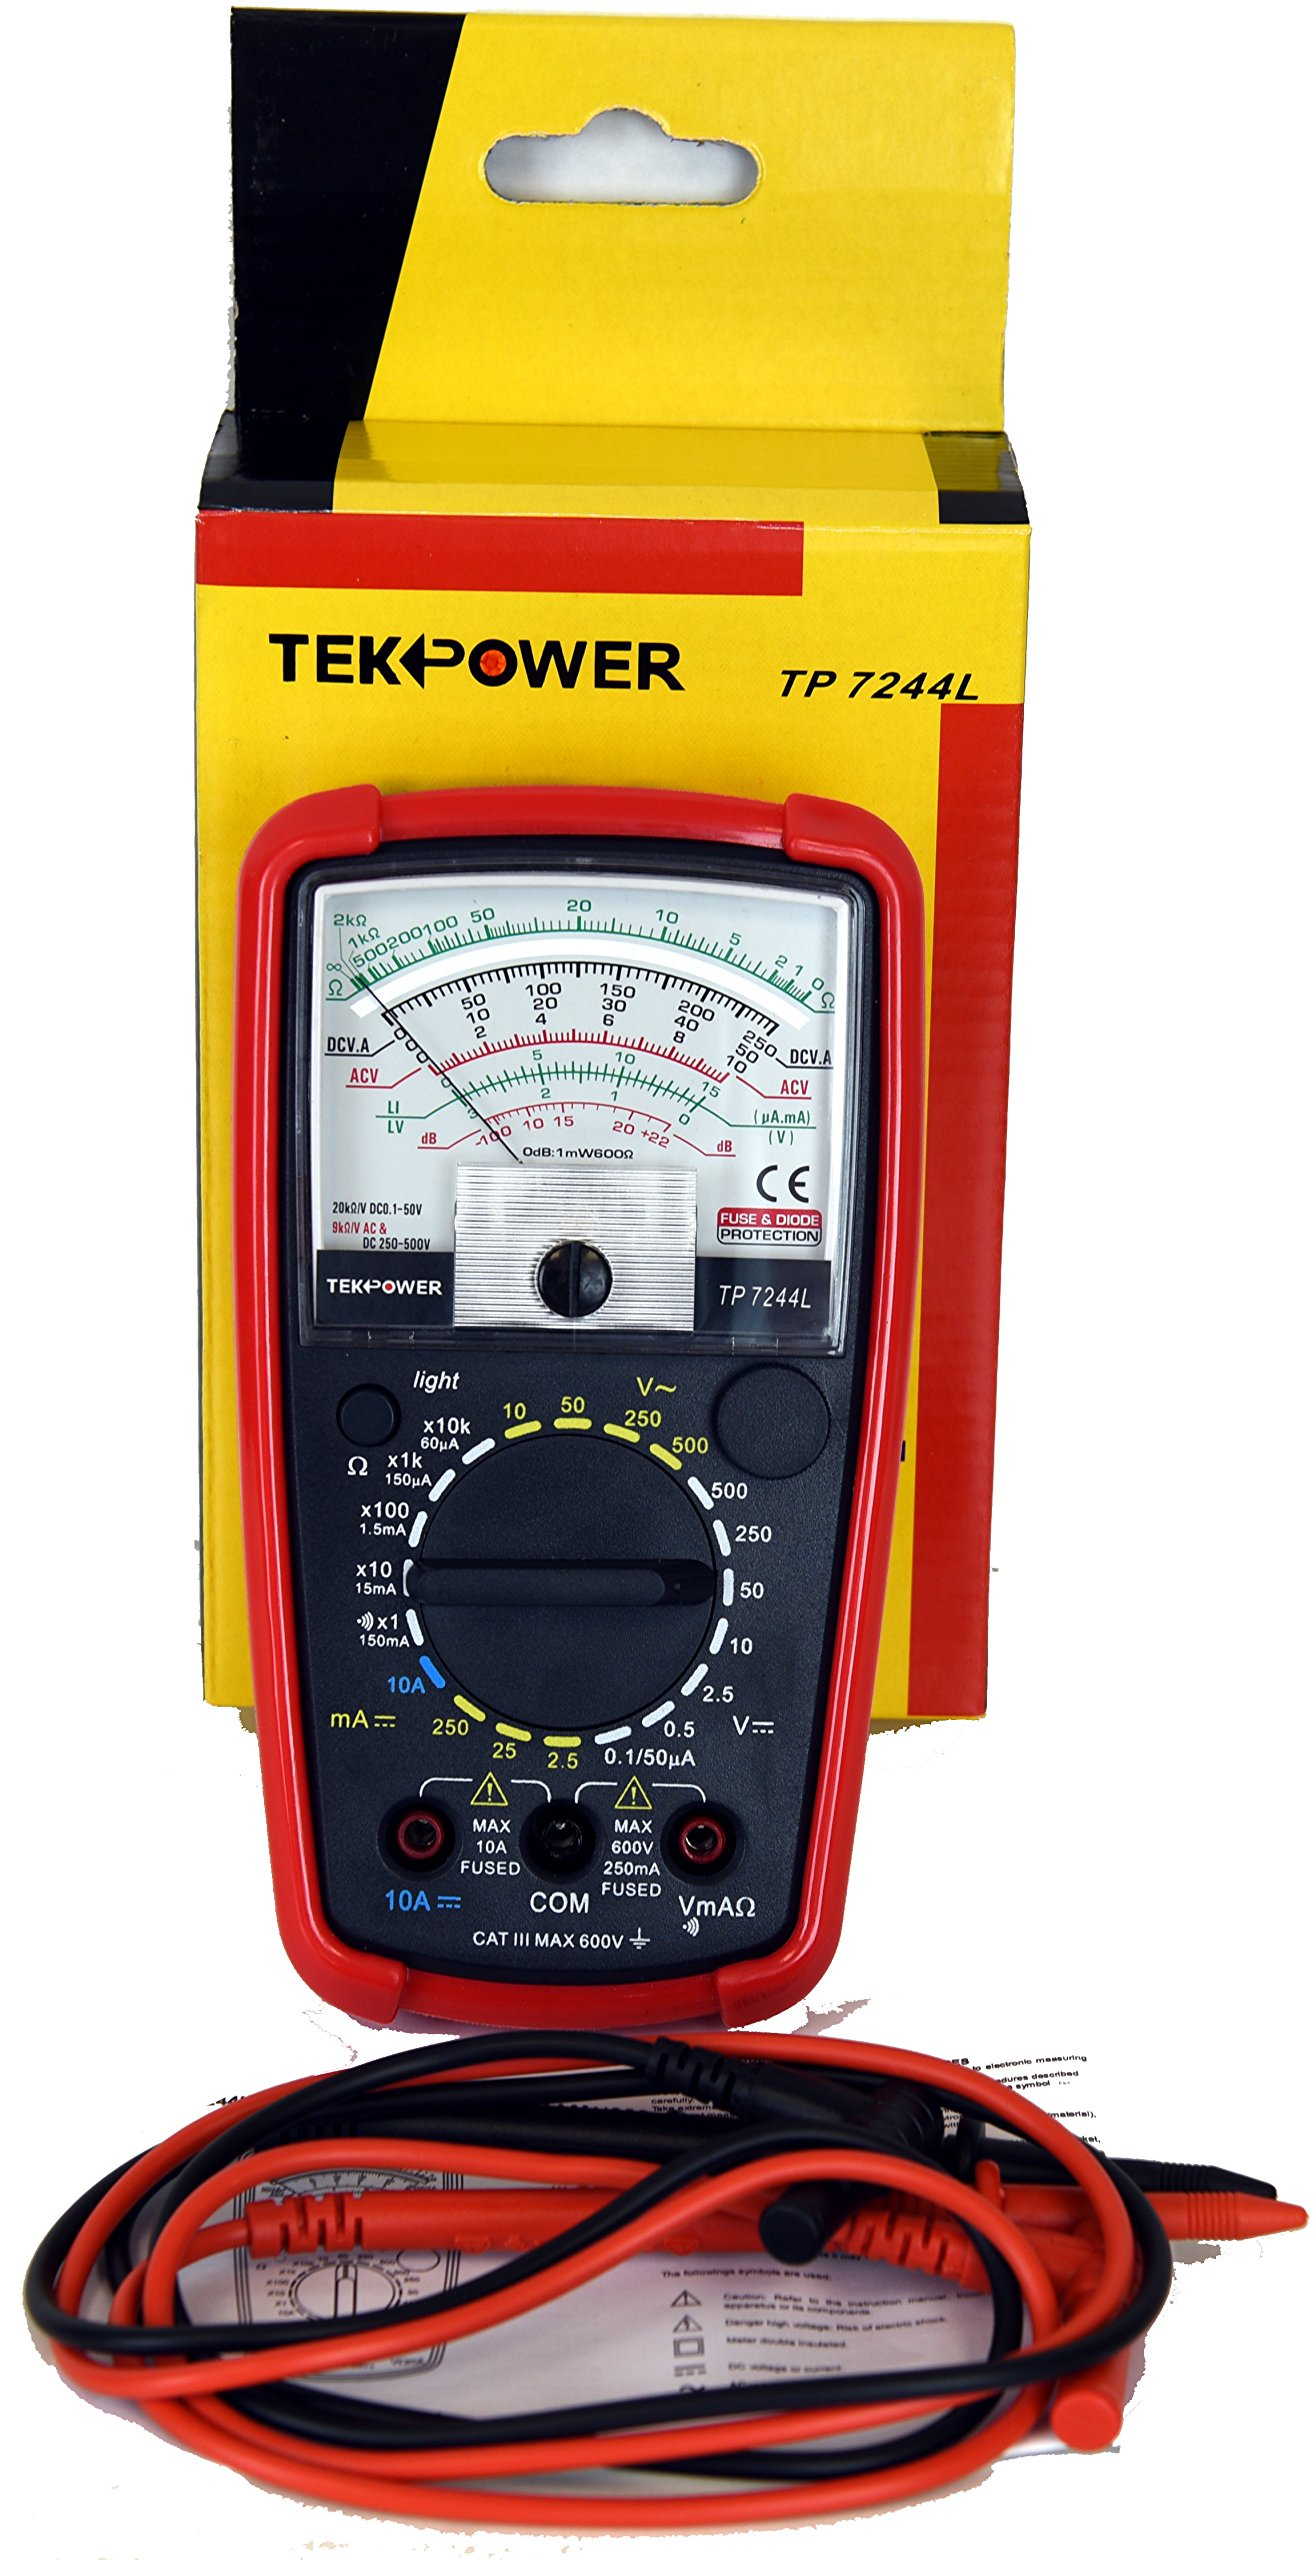 Tekpower TP7244L 7-Function 20-Range Analog Multimeter With Back Light with Strong Protective Holster by Tekpower (Image #7)